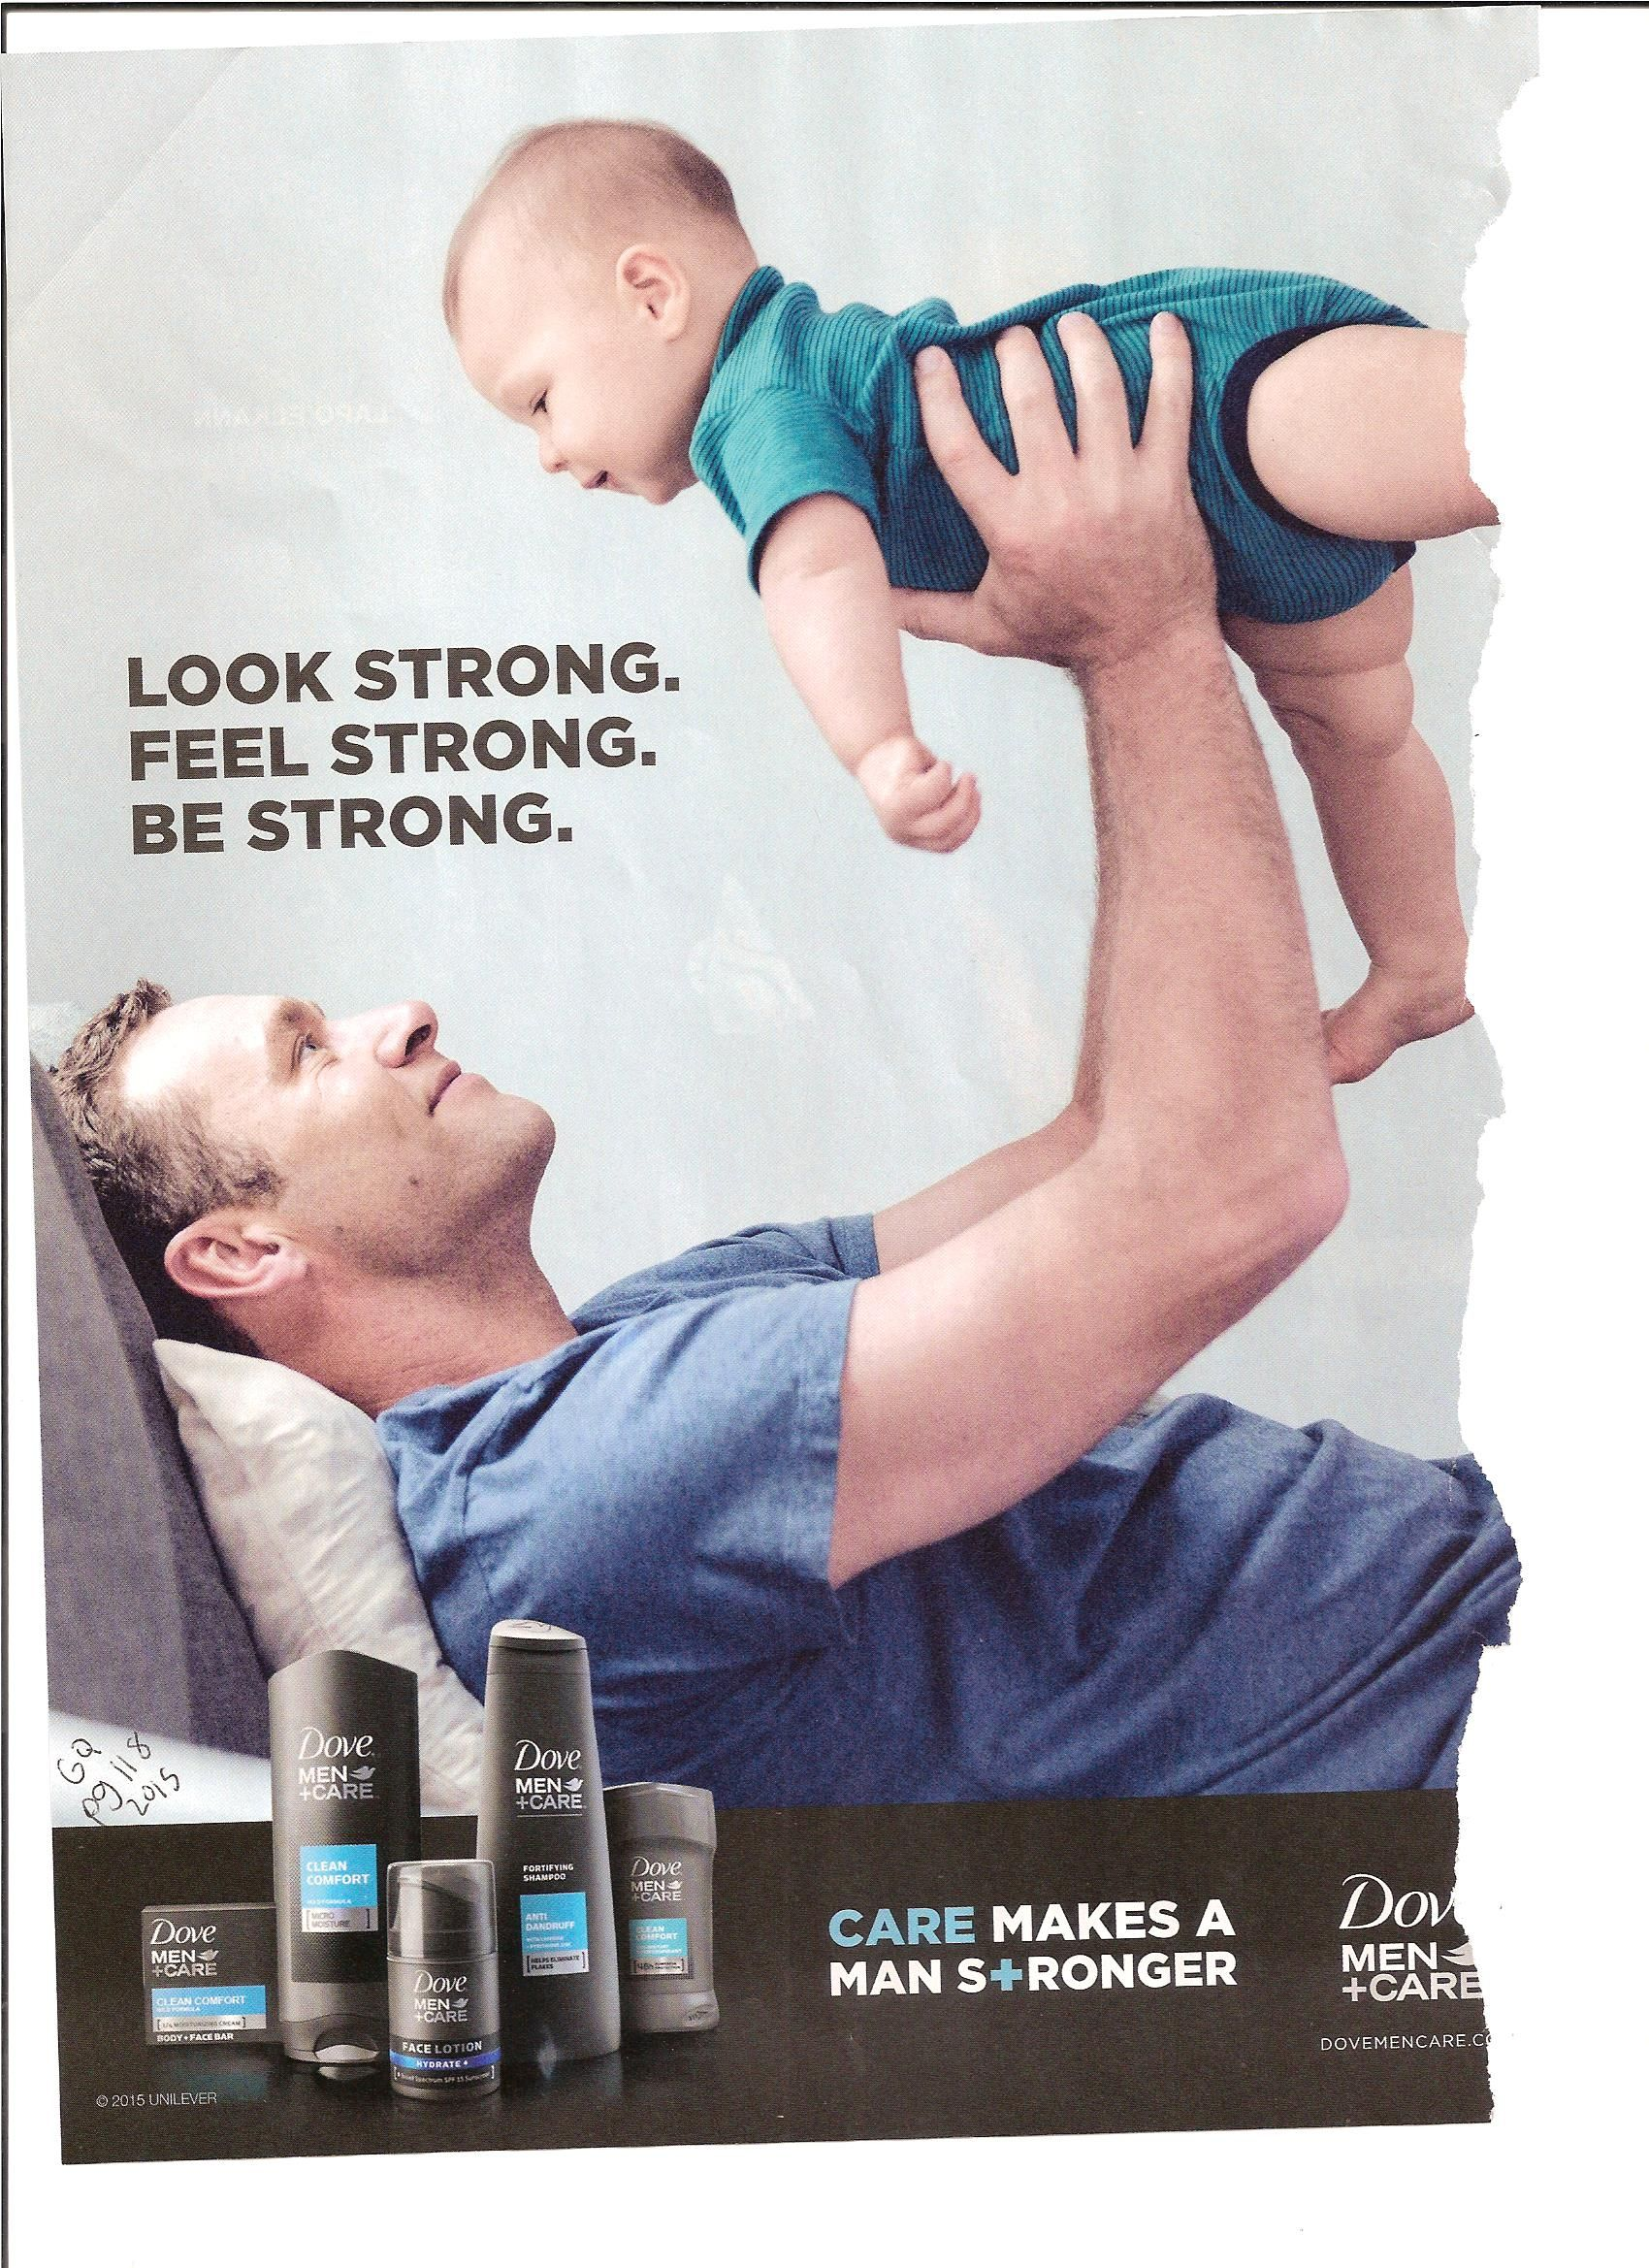 Ad 11. This is an ad for men's Dove products. From bar